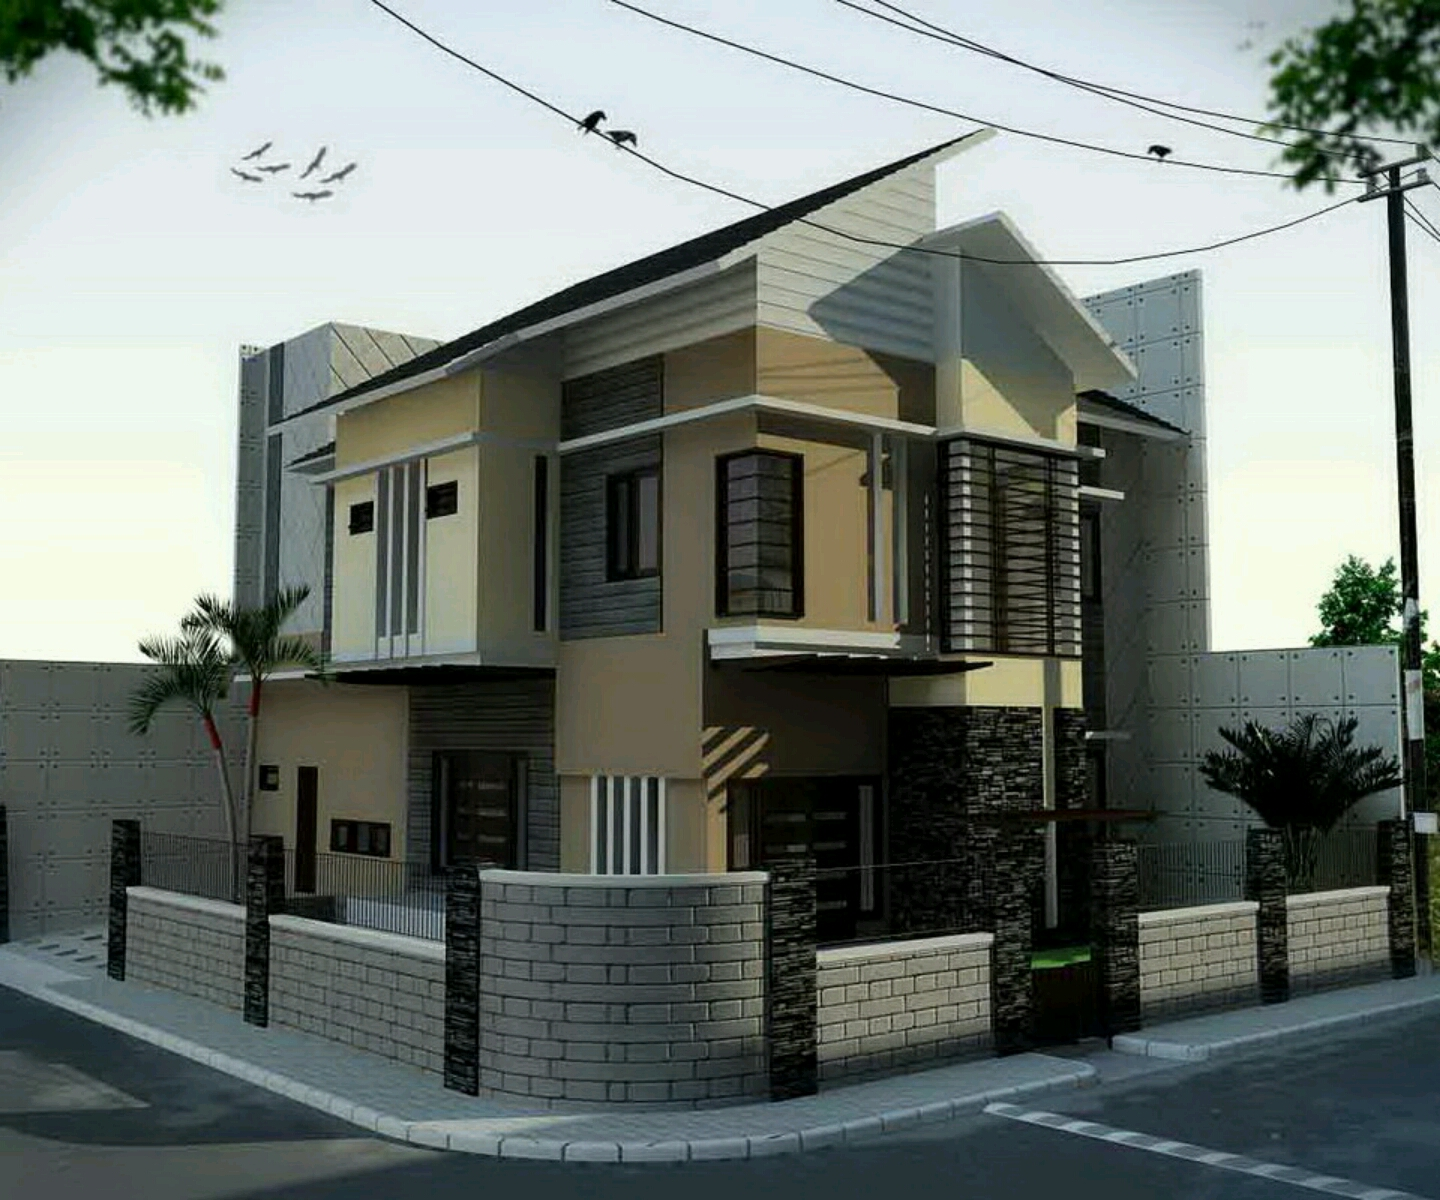 Modern homes designs front views modern home designs for Front view house plans